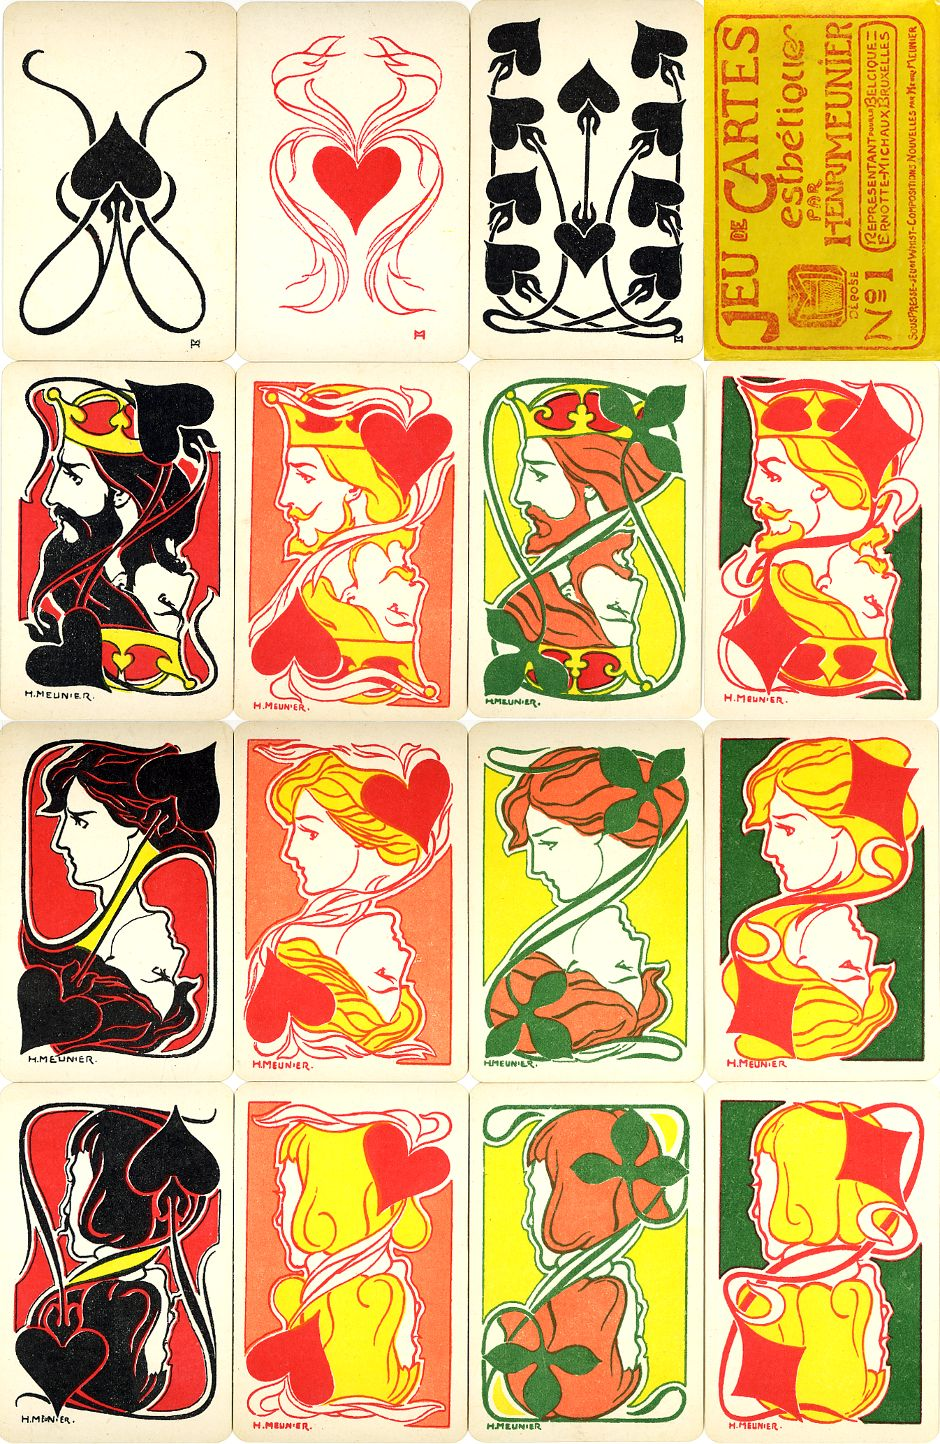 Jeu de Cartes Estétique Nº1, designed by Henri Meunier & published by Ernotte Michaux, 1900